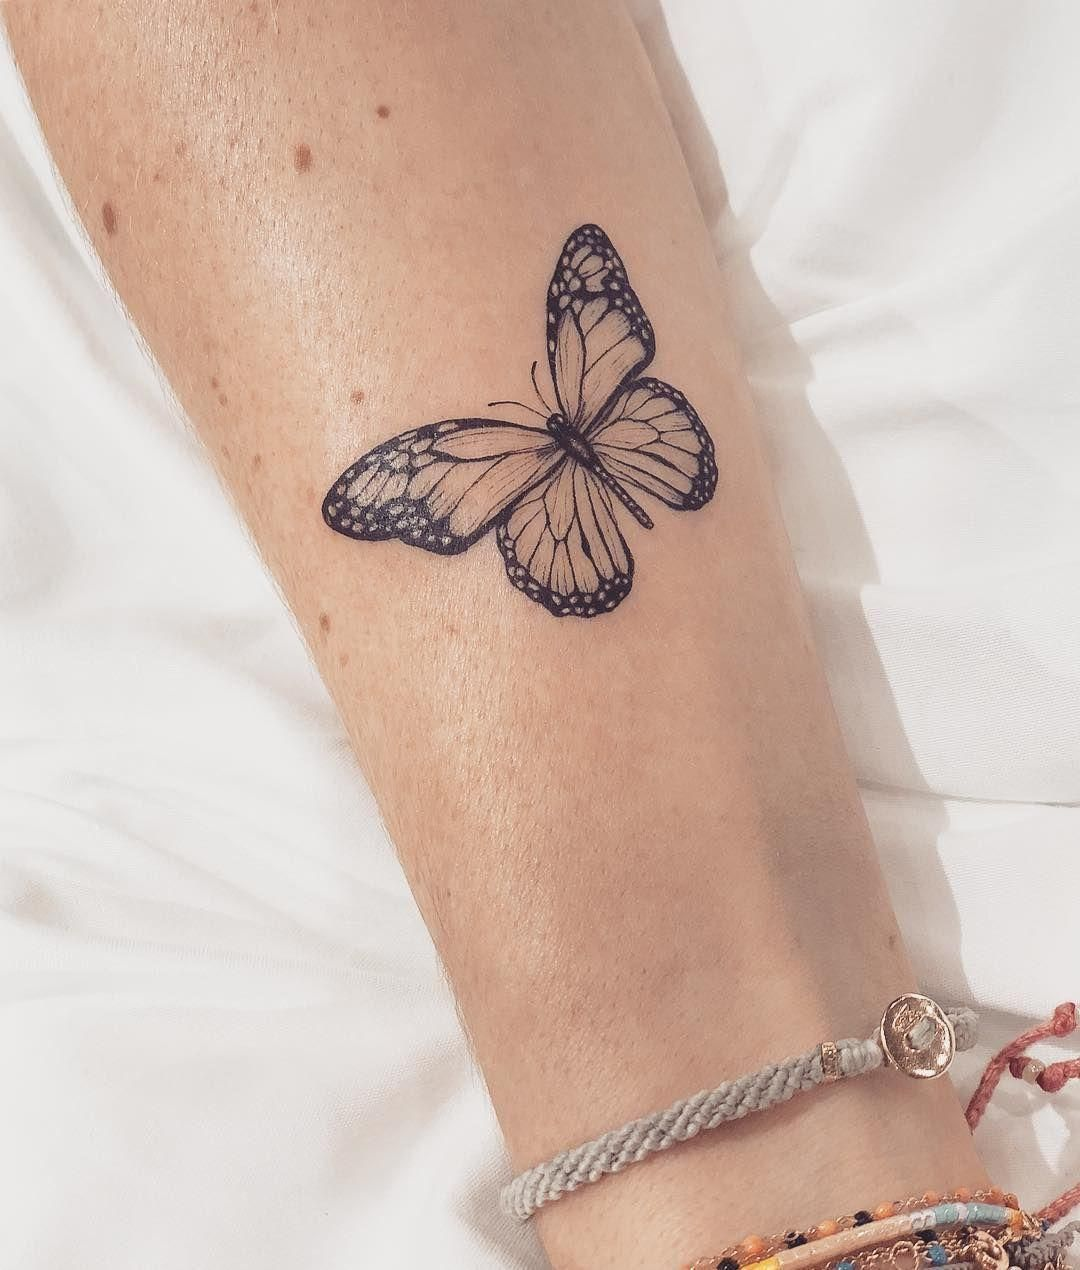 """Carla R  on Instagram: """"A Monarch butterfly for beautiful Jessica in memory of    #cat2 #tattooideasinmemoryof #tattooideasformoms #rosetattooideas #tattooideasfoot #tattooideasankle #tattoosketches #tattooideasbig #beautiful #instagram #memory #carla #monarch #butterfly #jessica"""